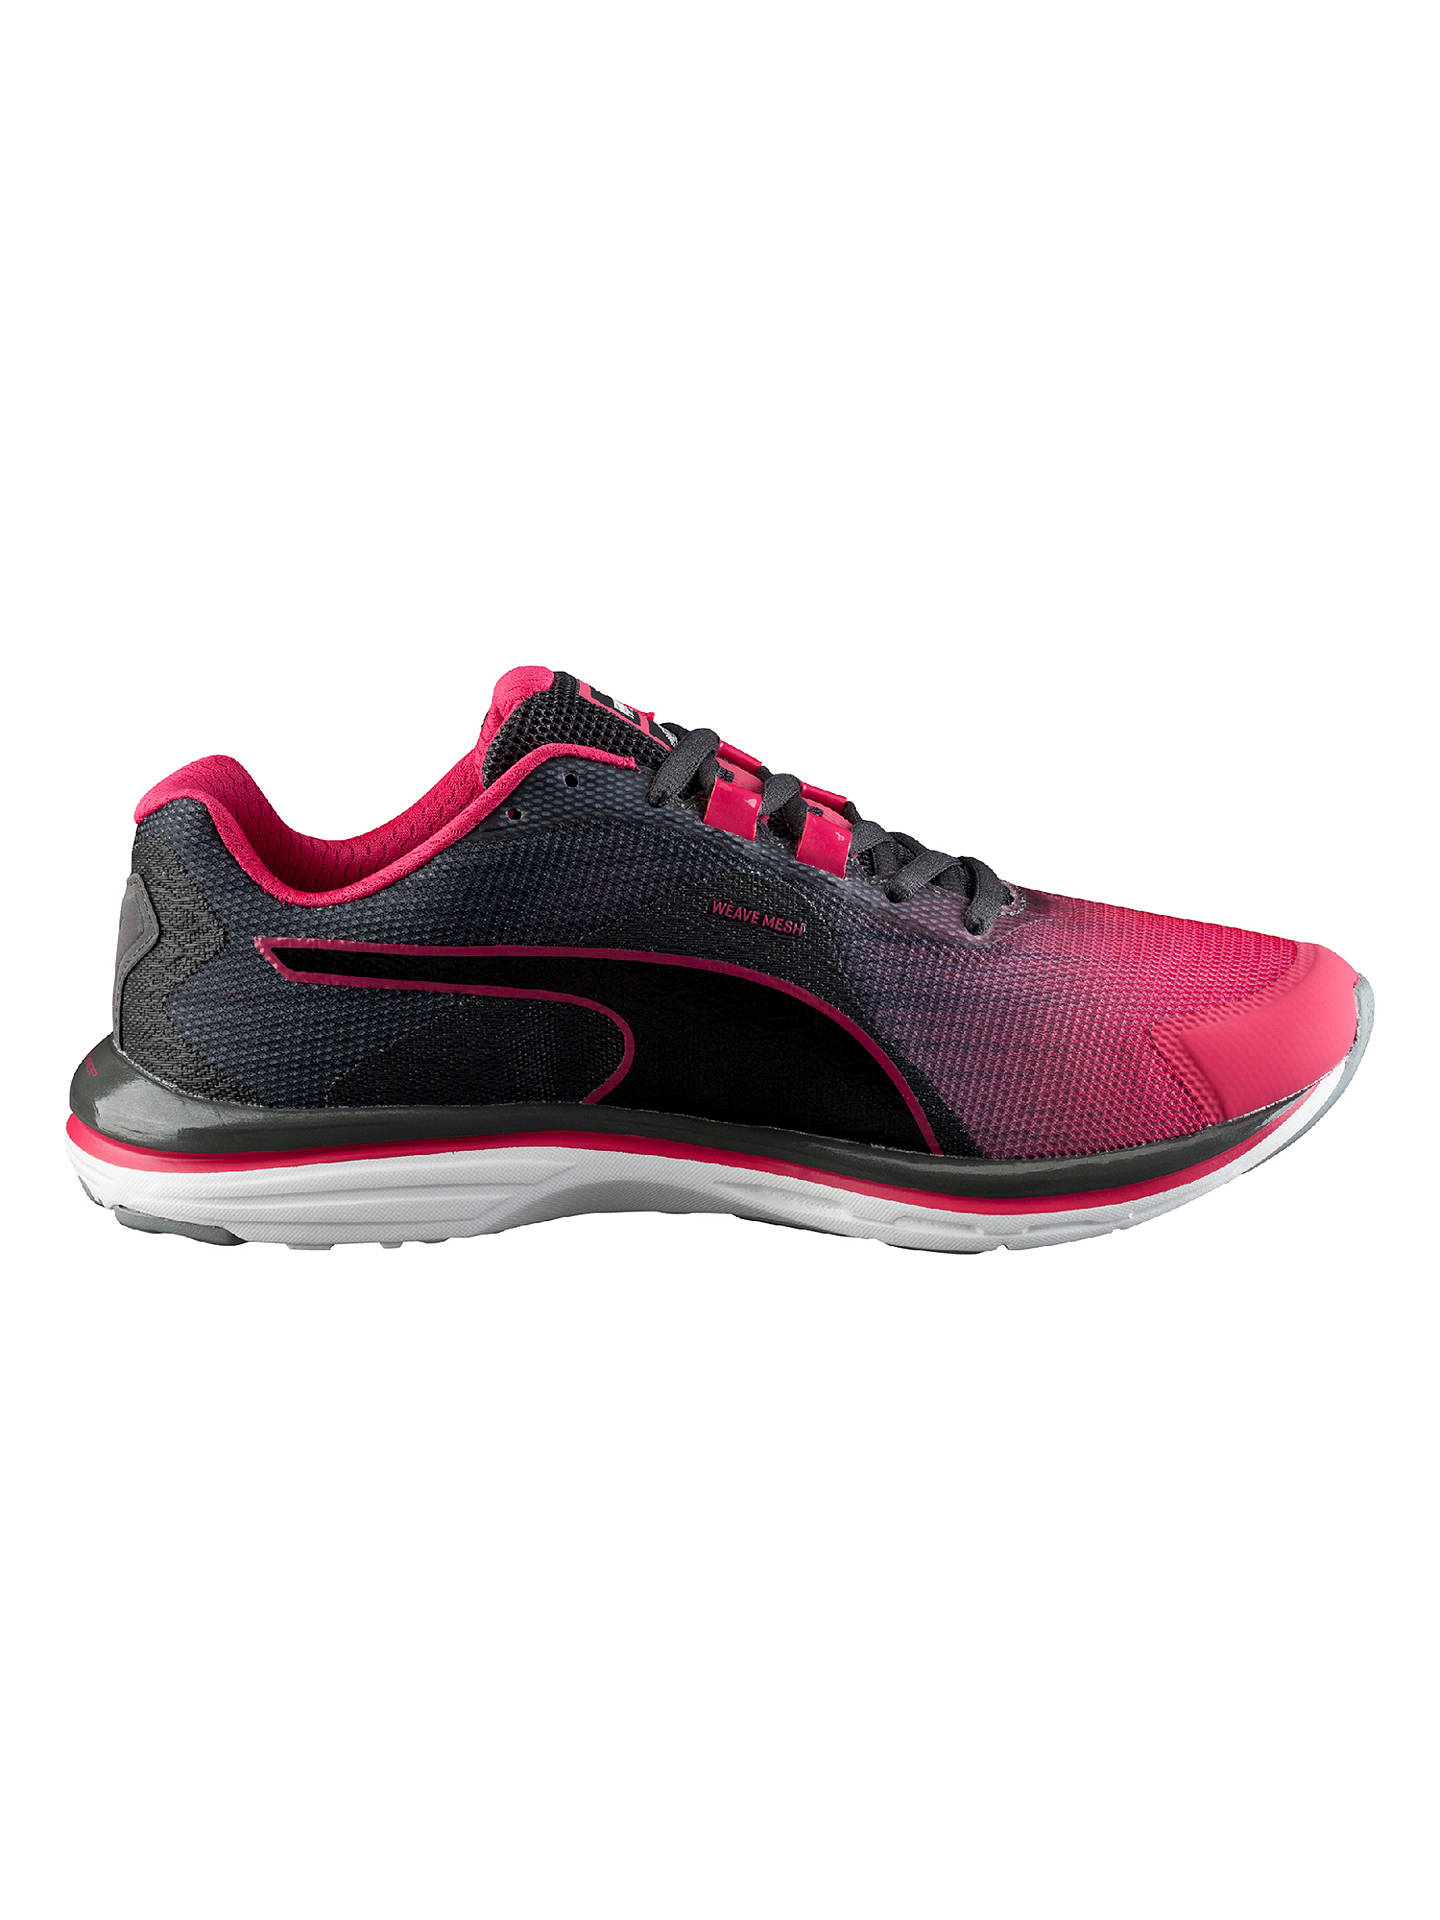 BuyPuma FAAS 500 v4 Women s Running Shoes 9ad1176bb